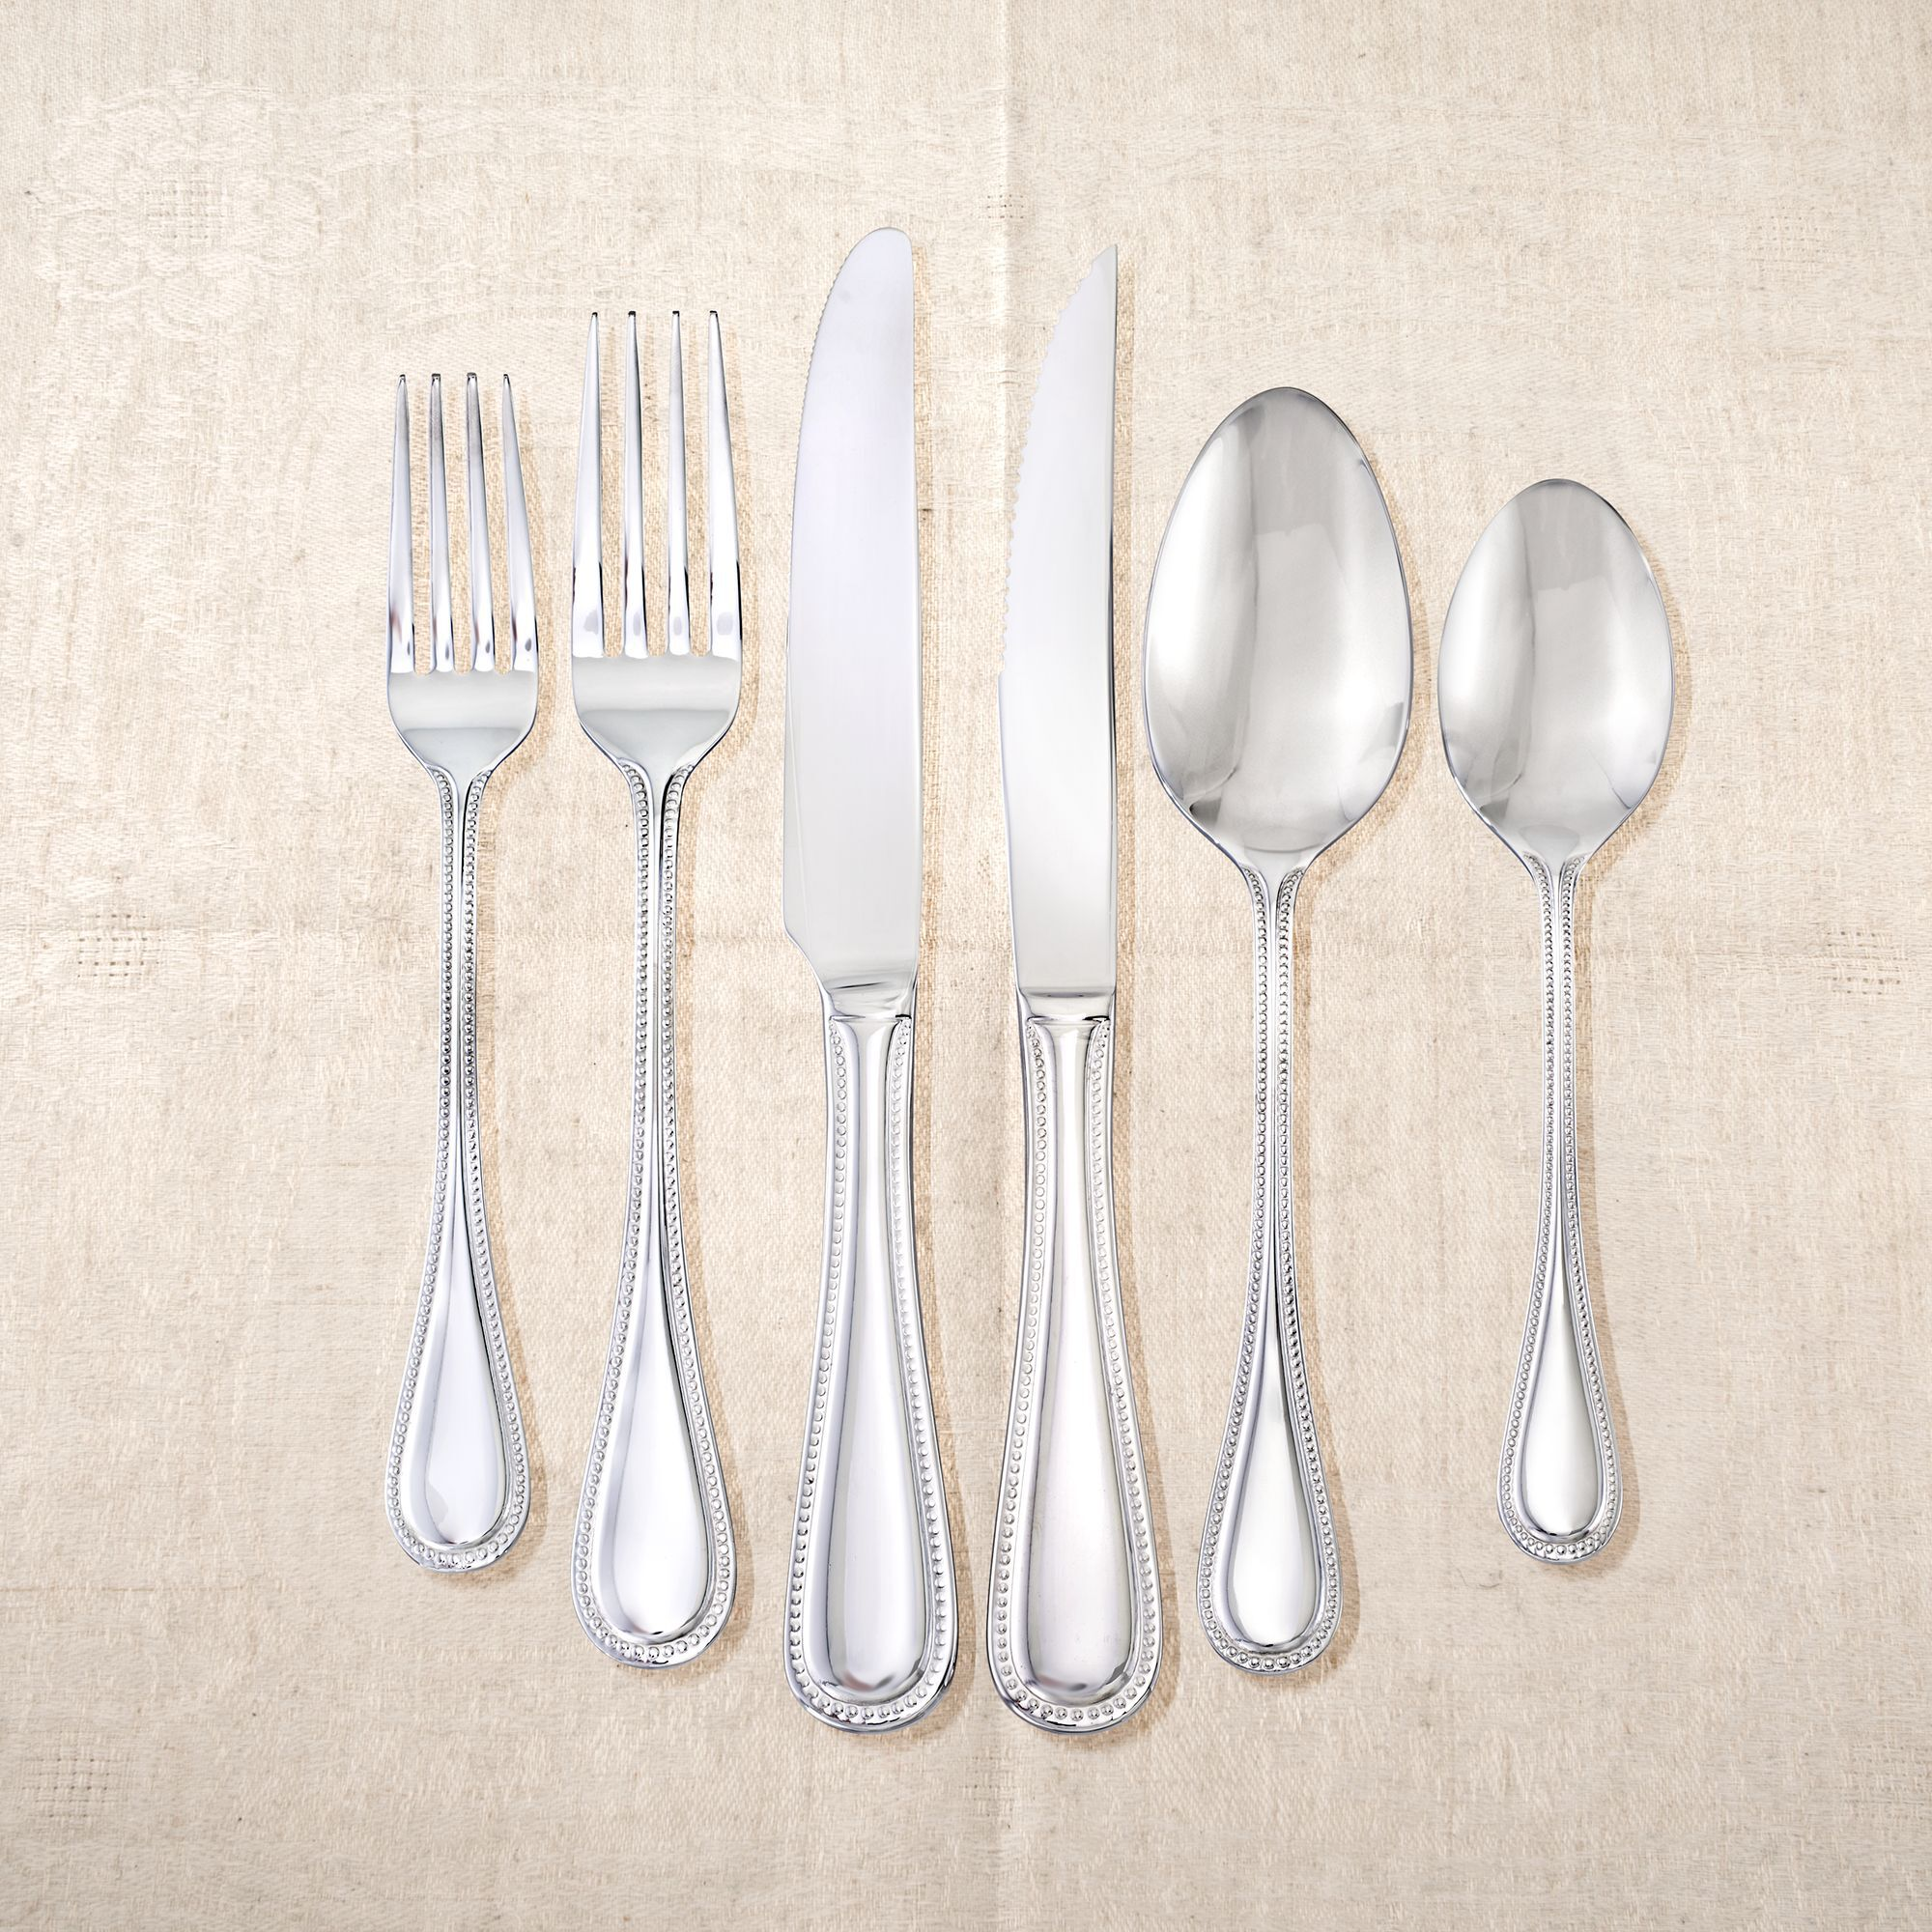 Discount Stainless Flatware Studio Silversmiths